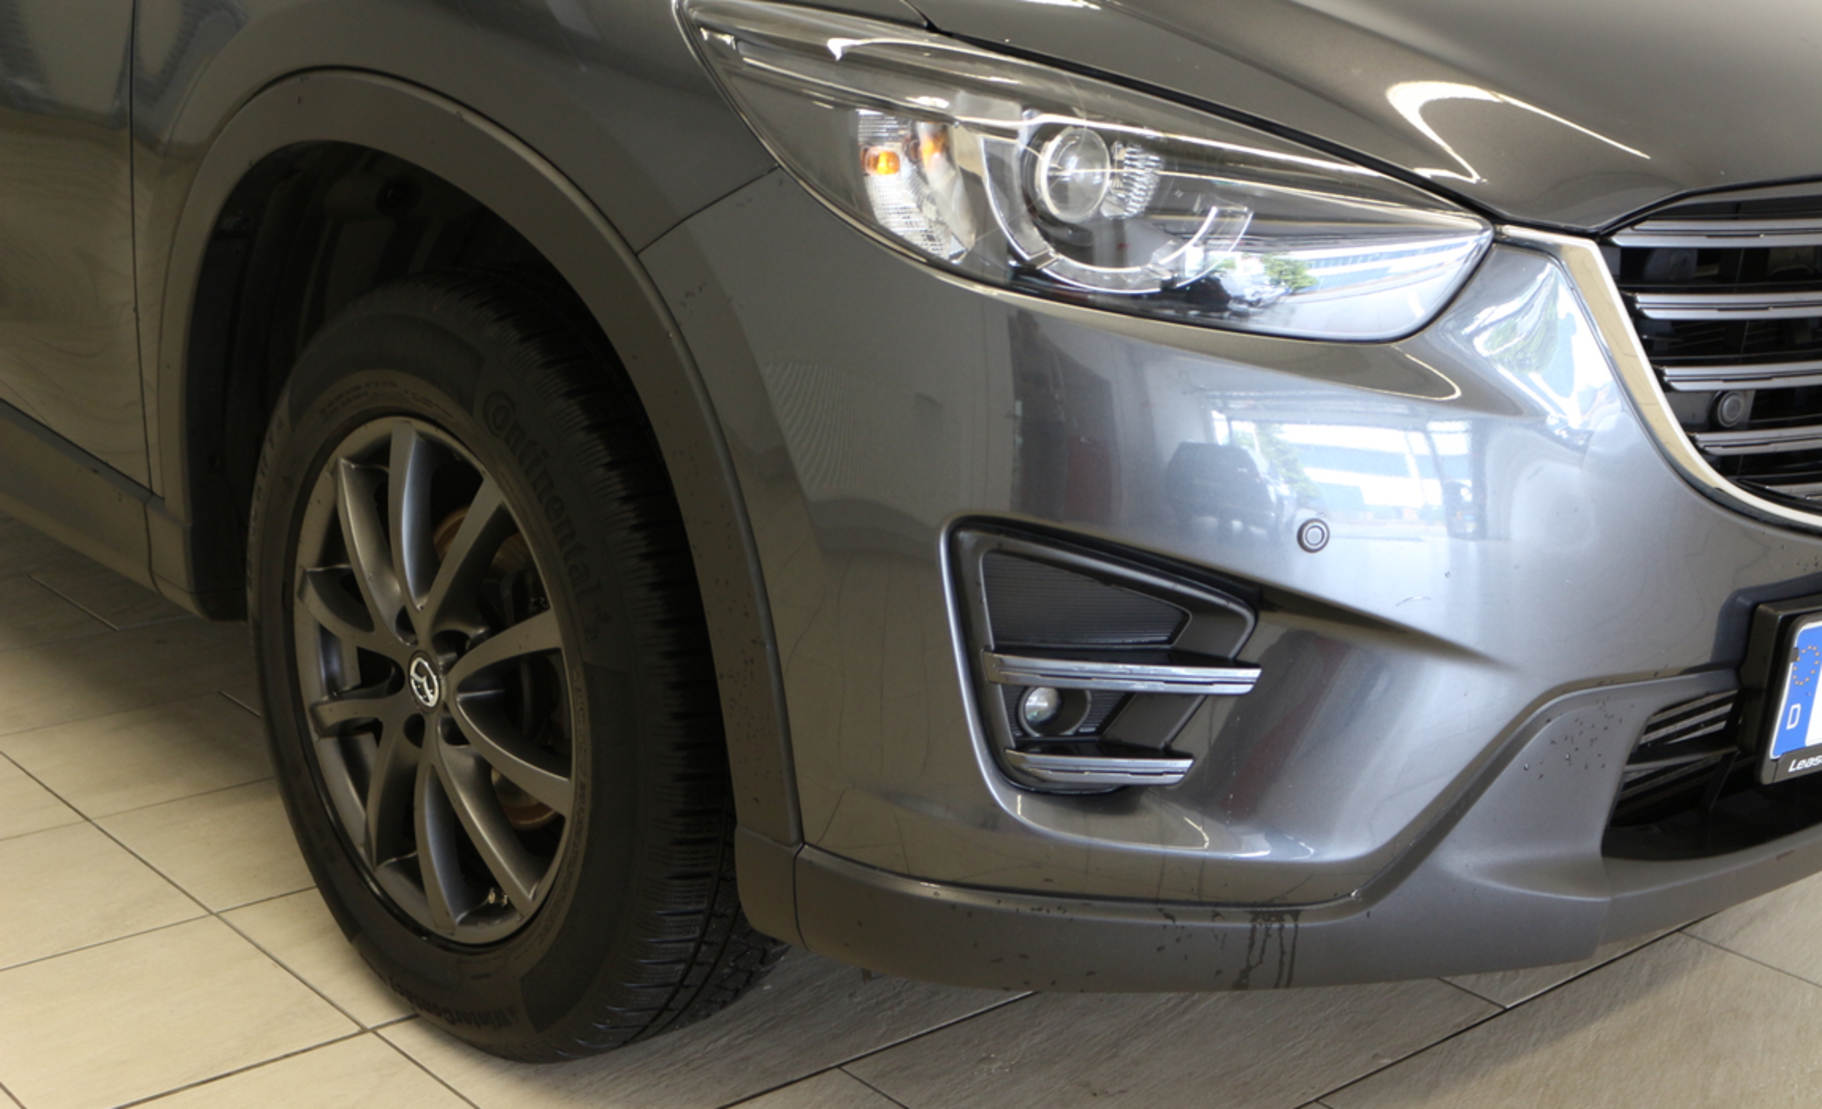 Mazda CX-5 SKYACTIV-D 150 Exclusive-Line (576465) detail2